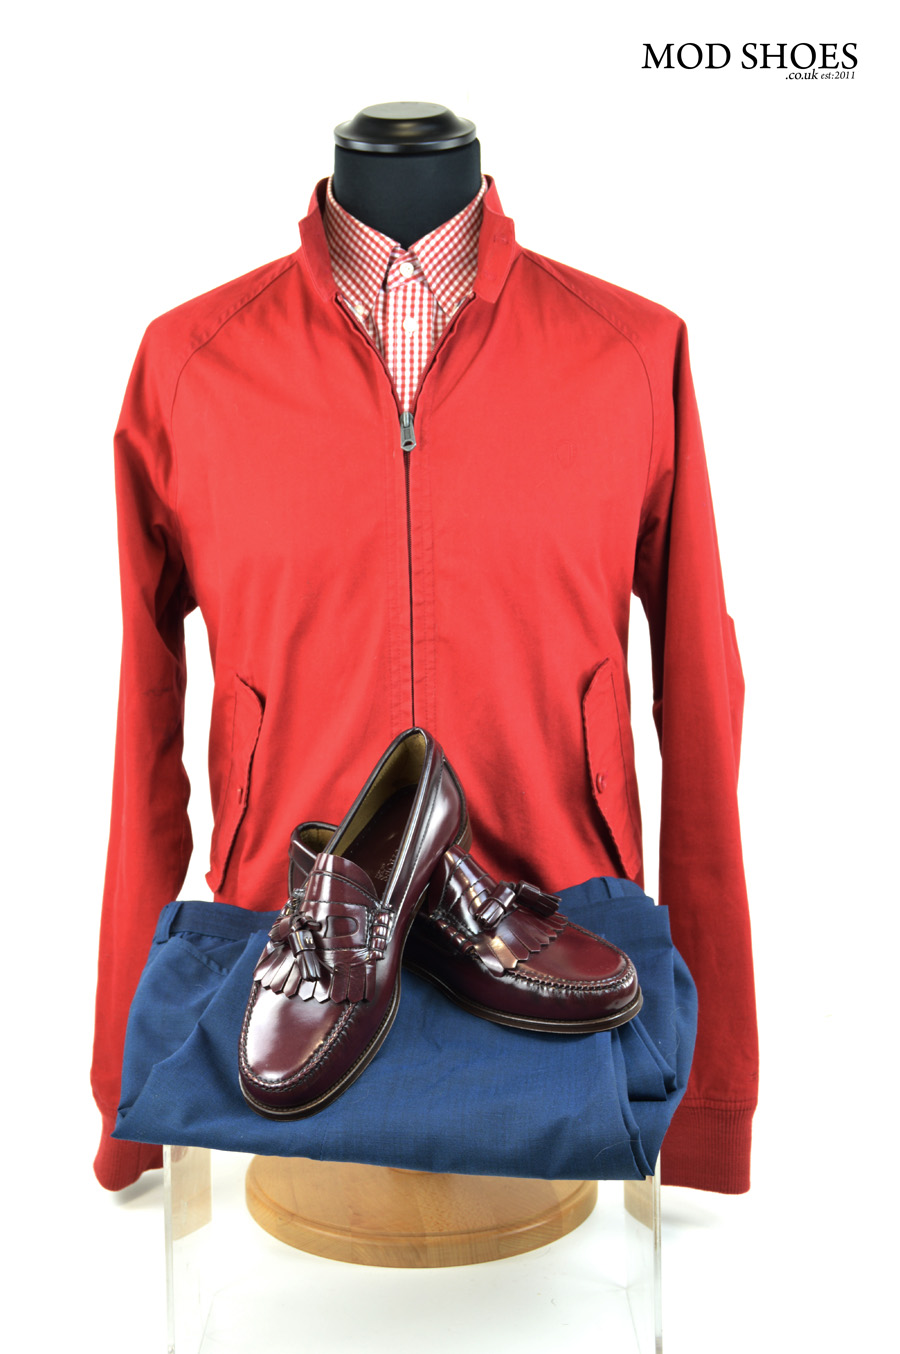 modshoes oxblood tassel loafers with red harrington